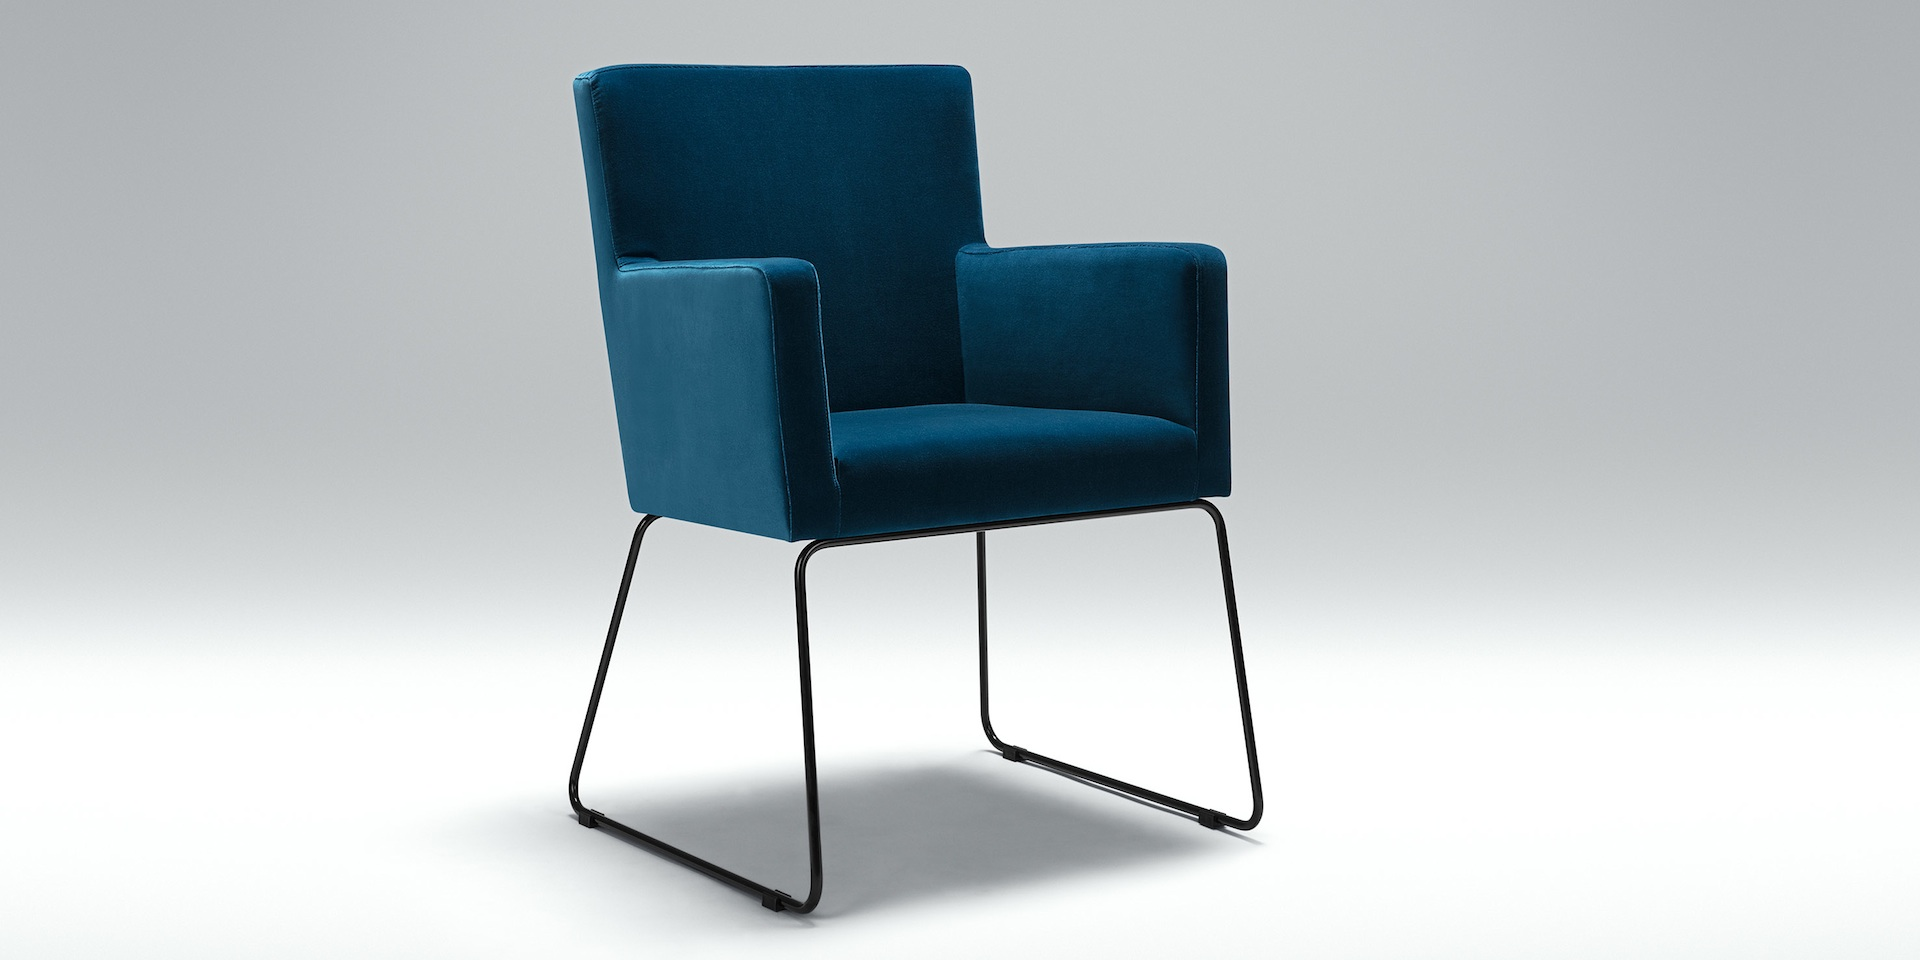 CLARK_shadow_chair_lario58_blue_2